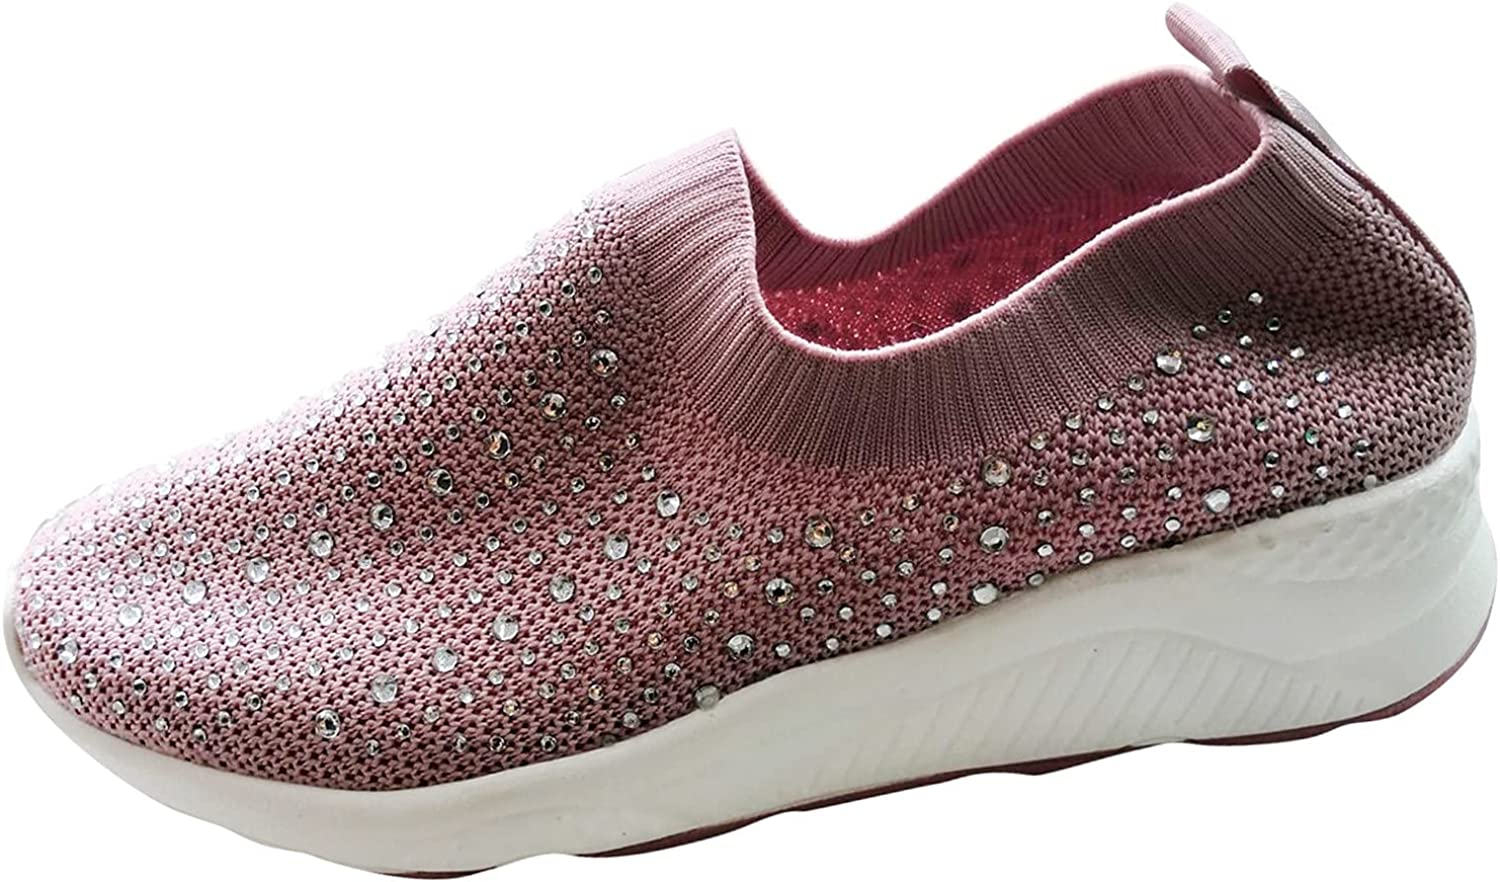 Women's Platform Rhinestone Knitted Casual Shoes Crystal Breathable Casual Walking Orthopedic Canvas Slip On Arch Support Sneakers